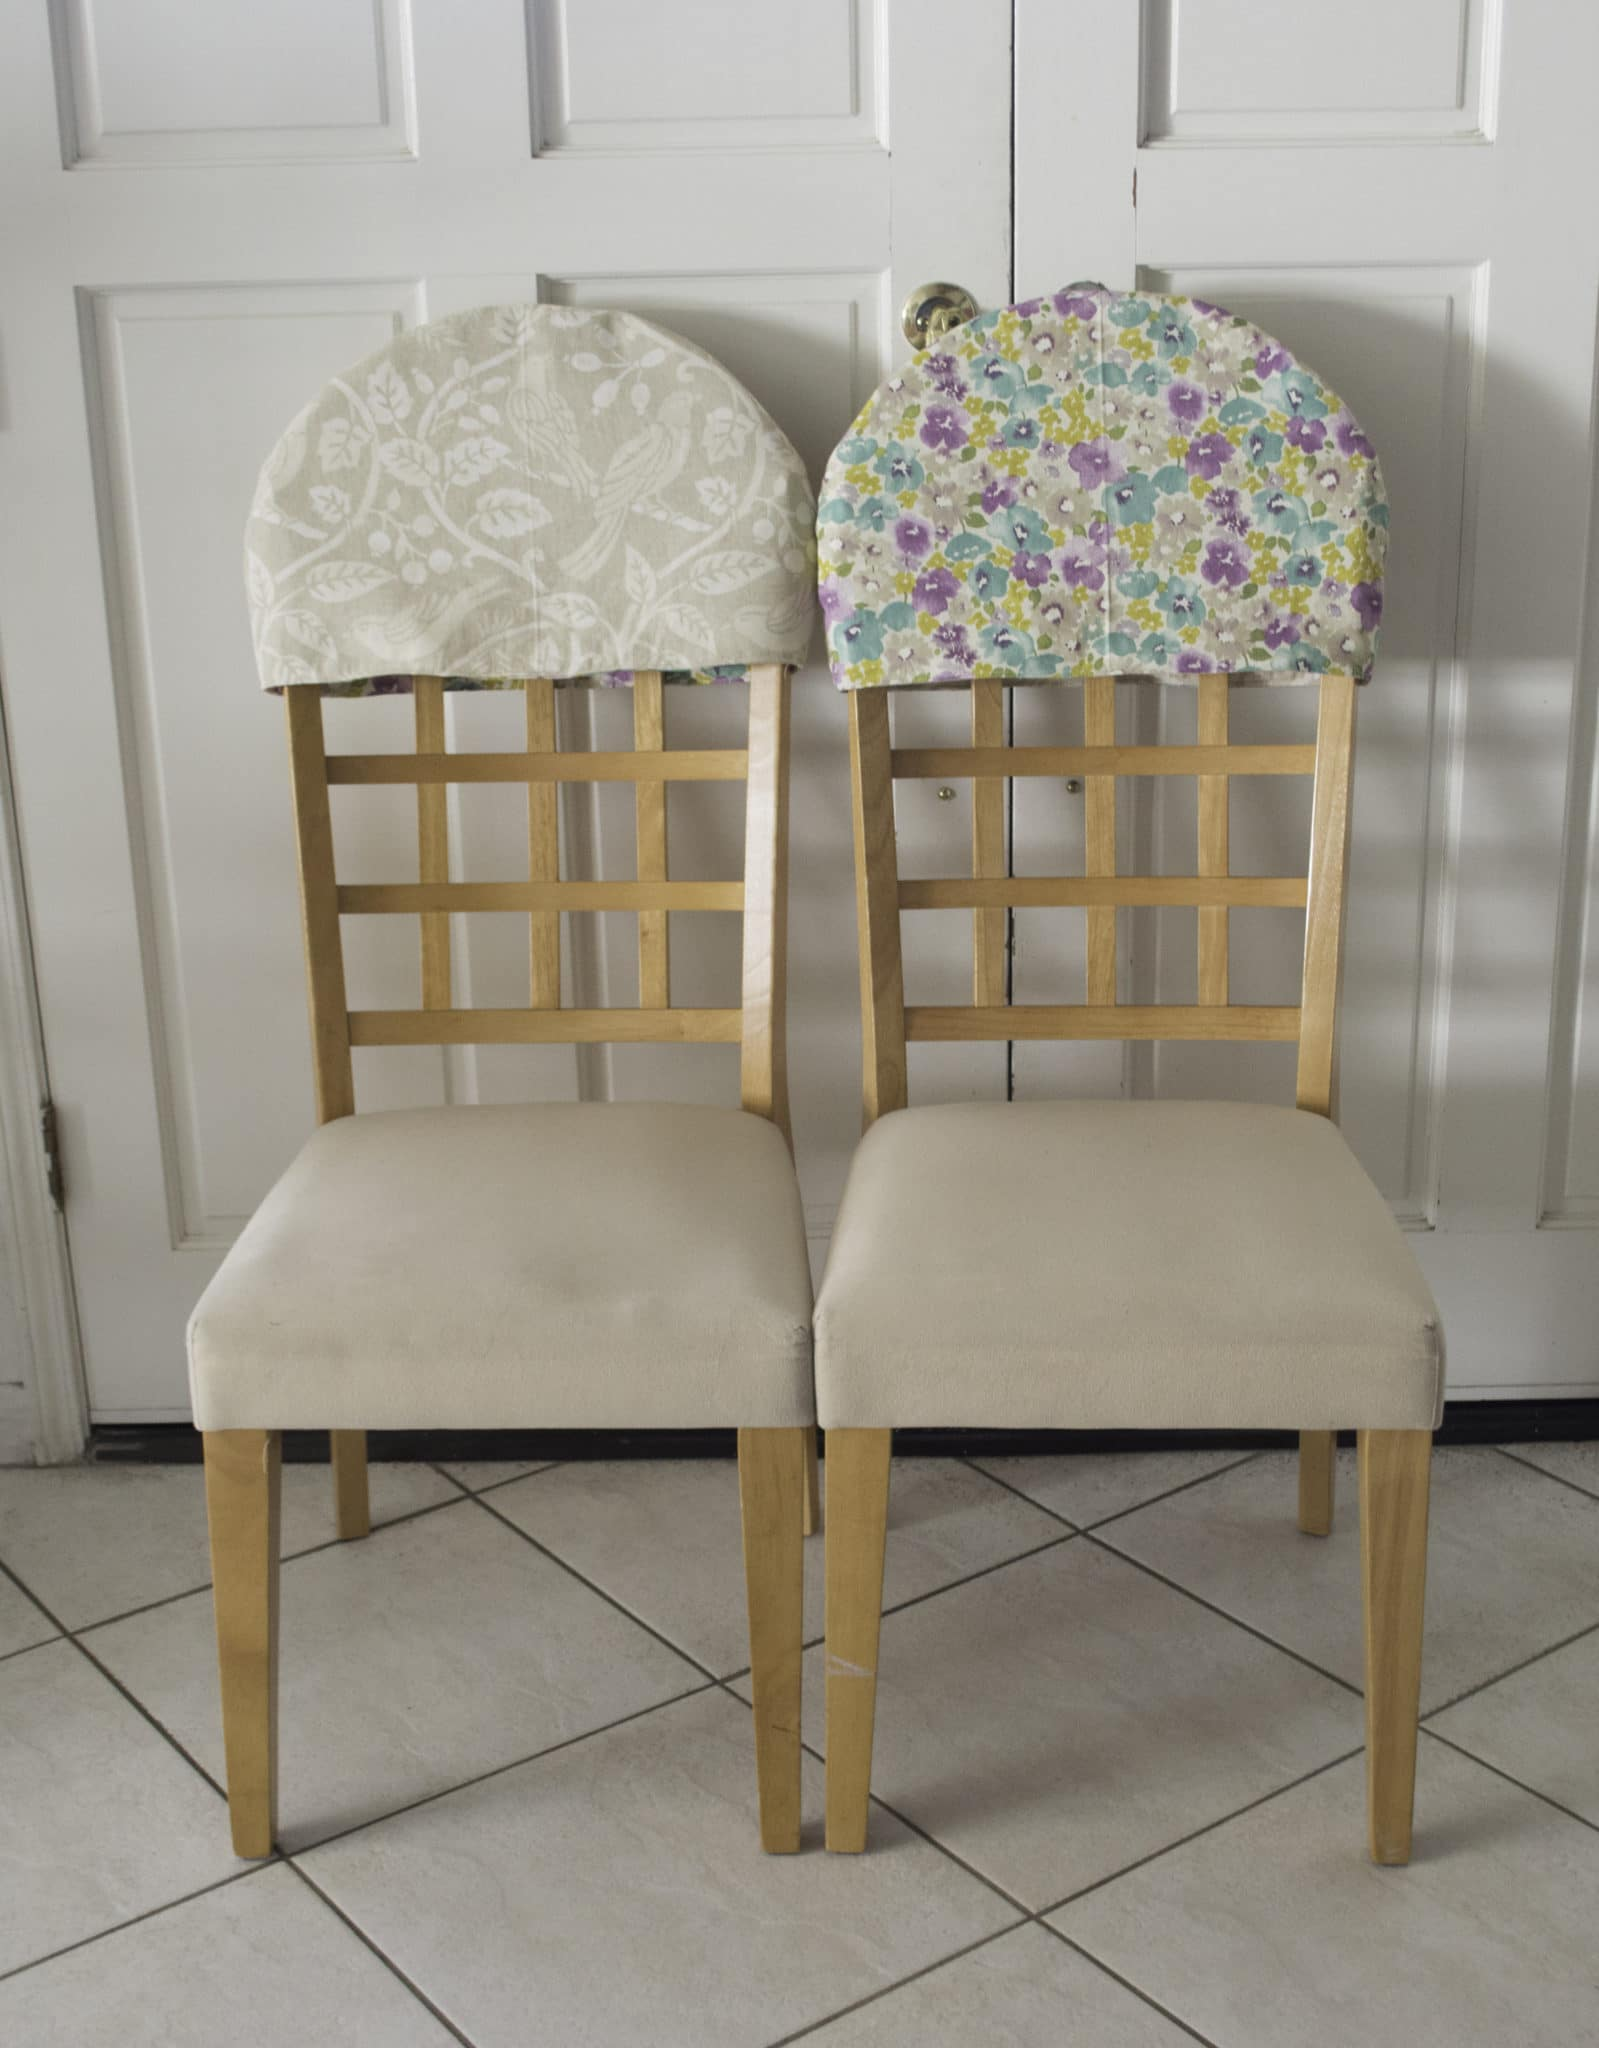 Chair Back Reversible Padded Chair Back Covers Sew Very Crafty